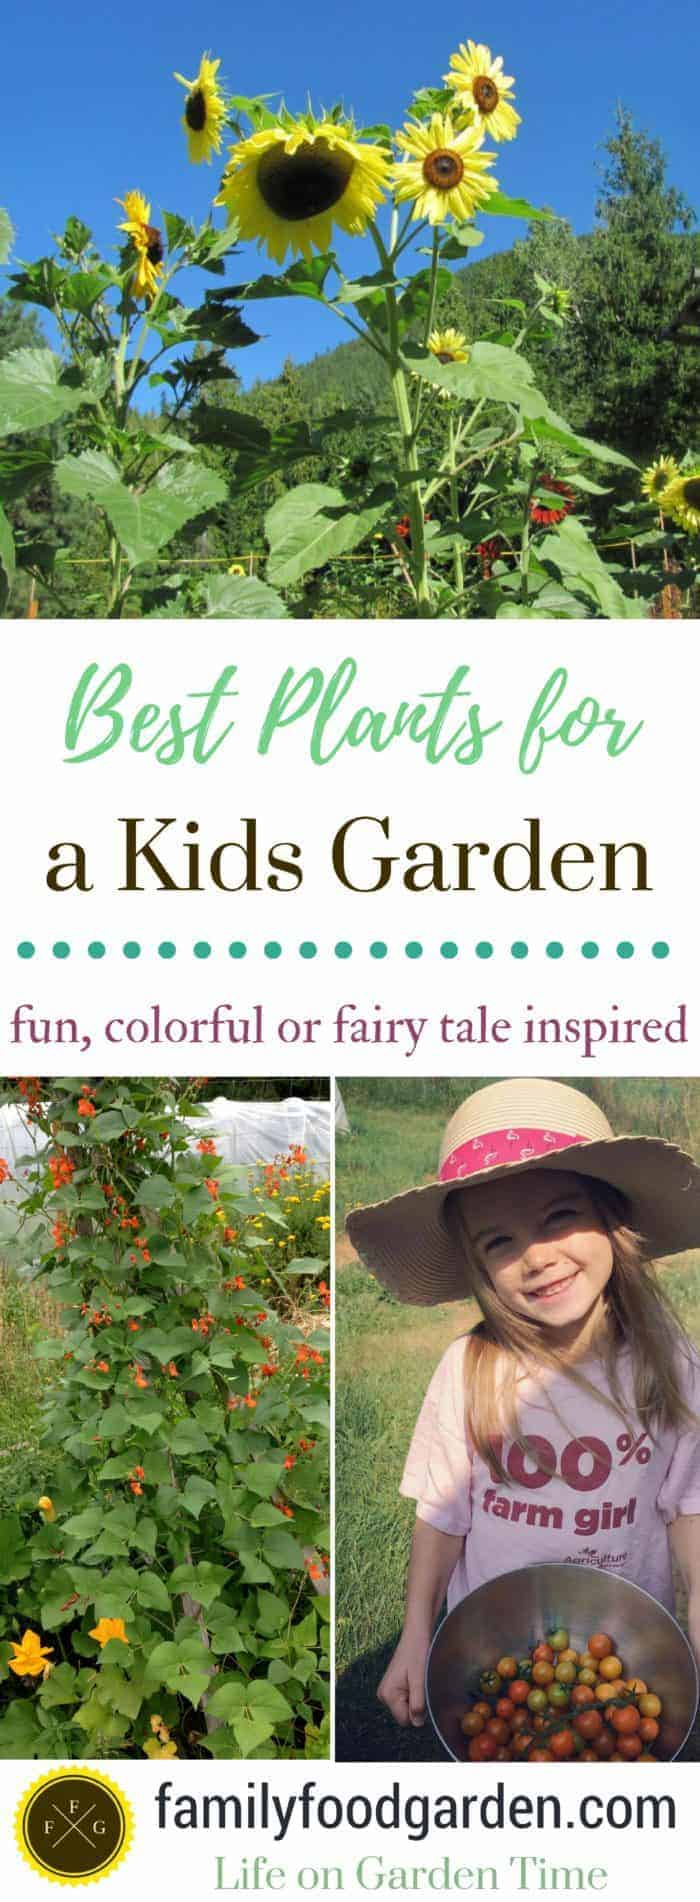 Super fun and colorful plants for a kids garden